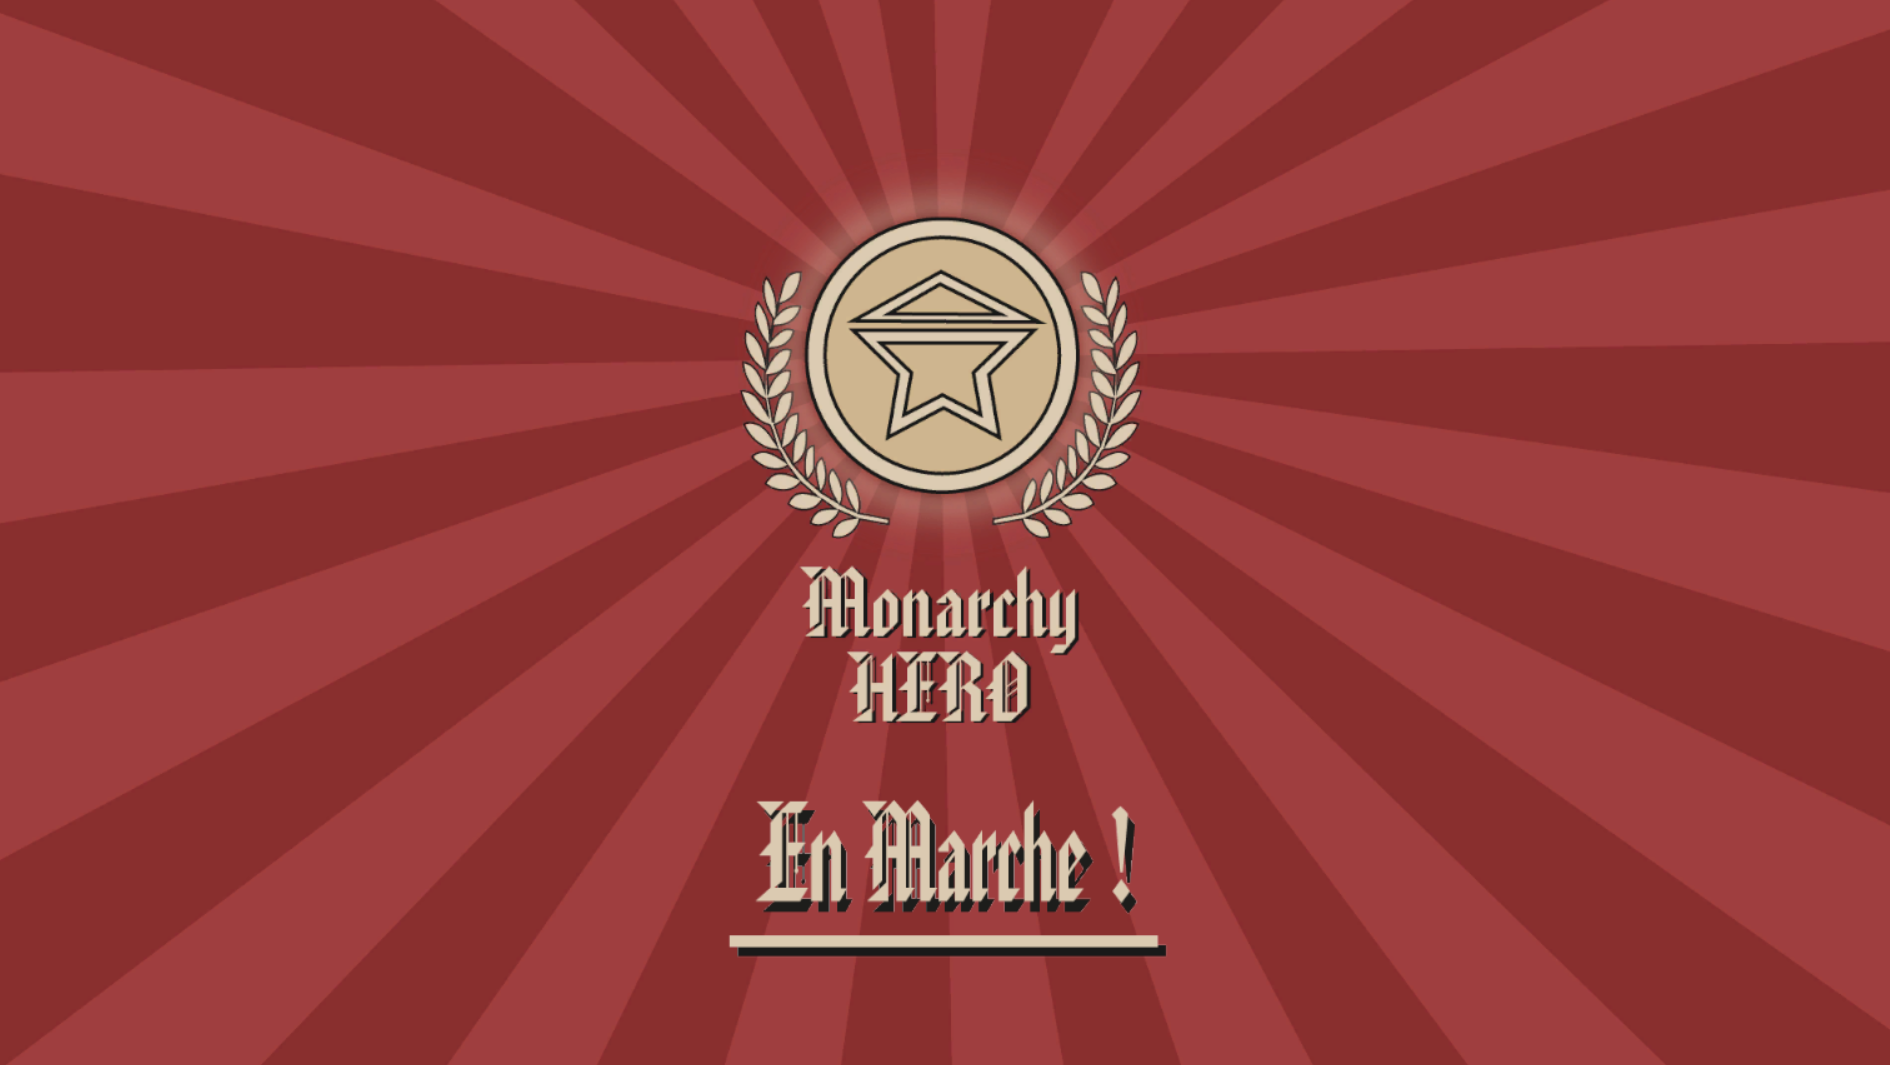 Monarchy HERO